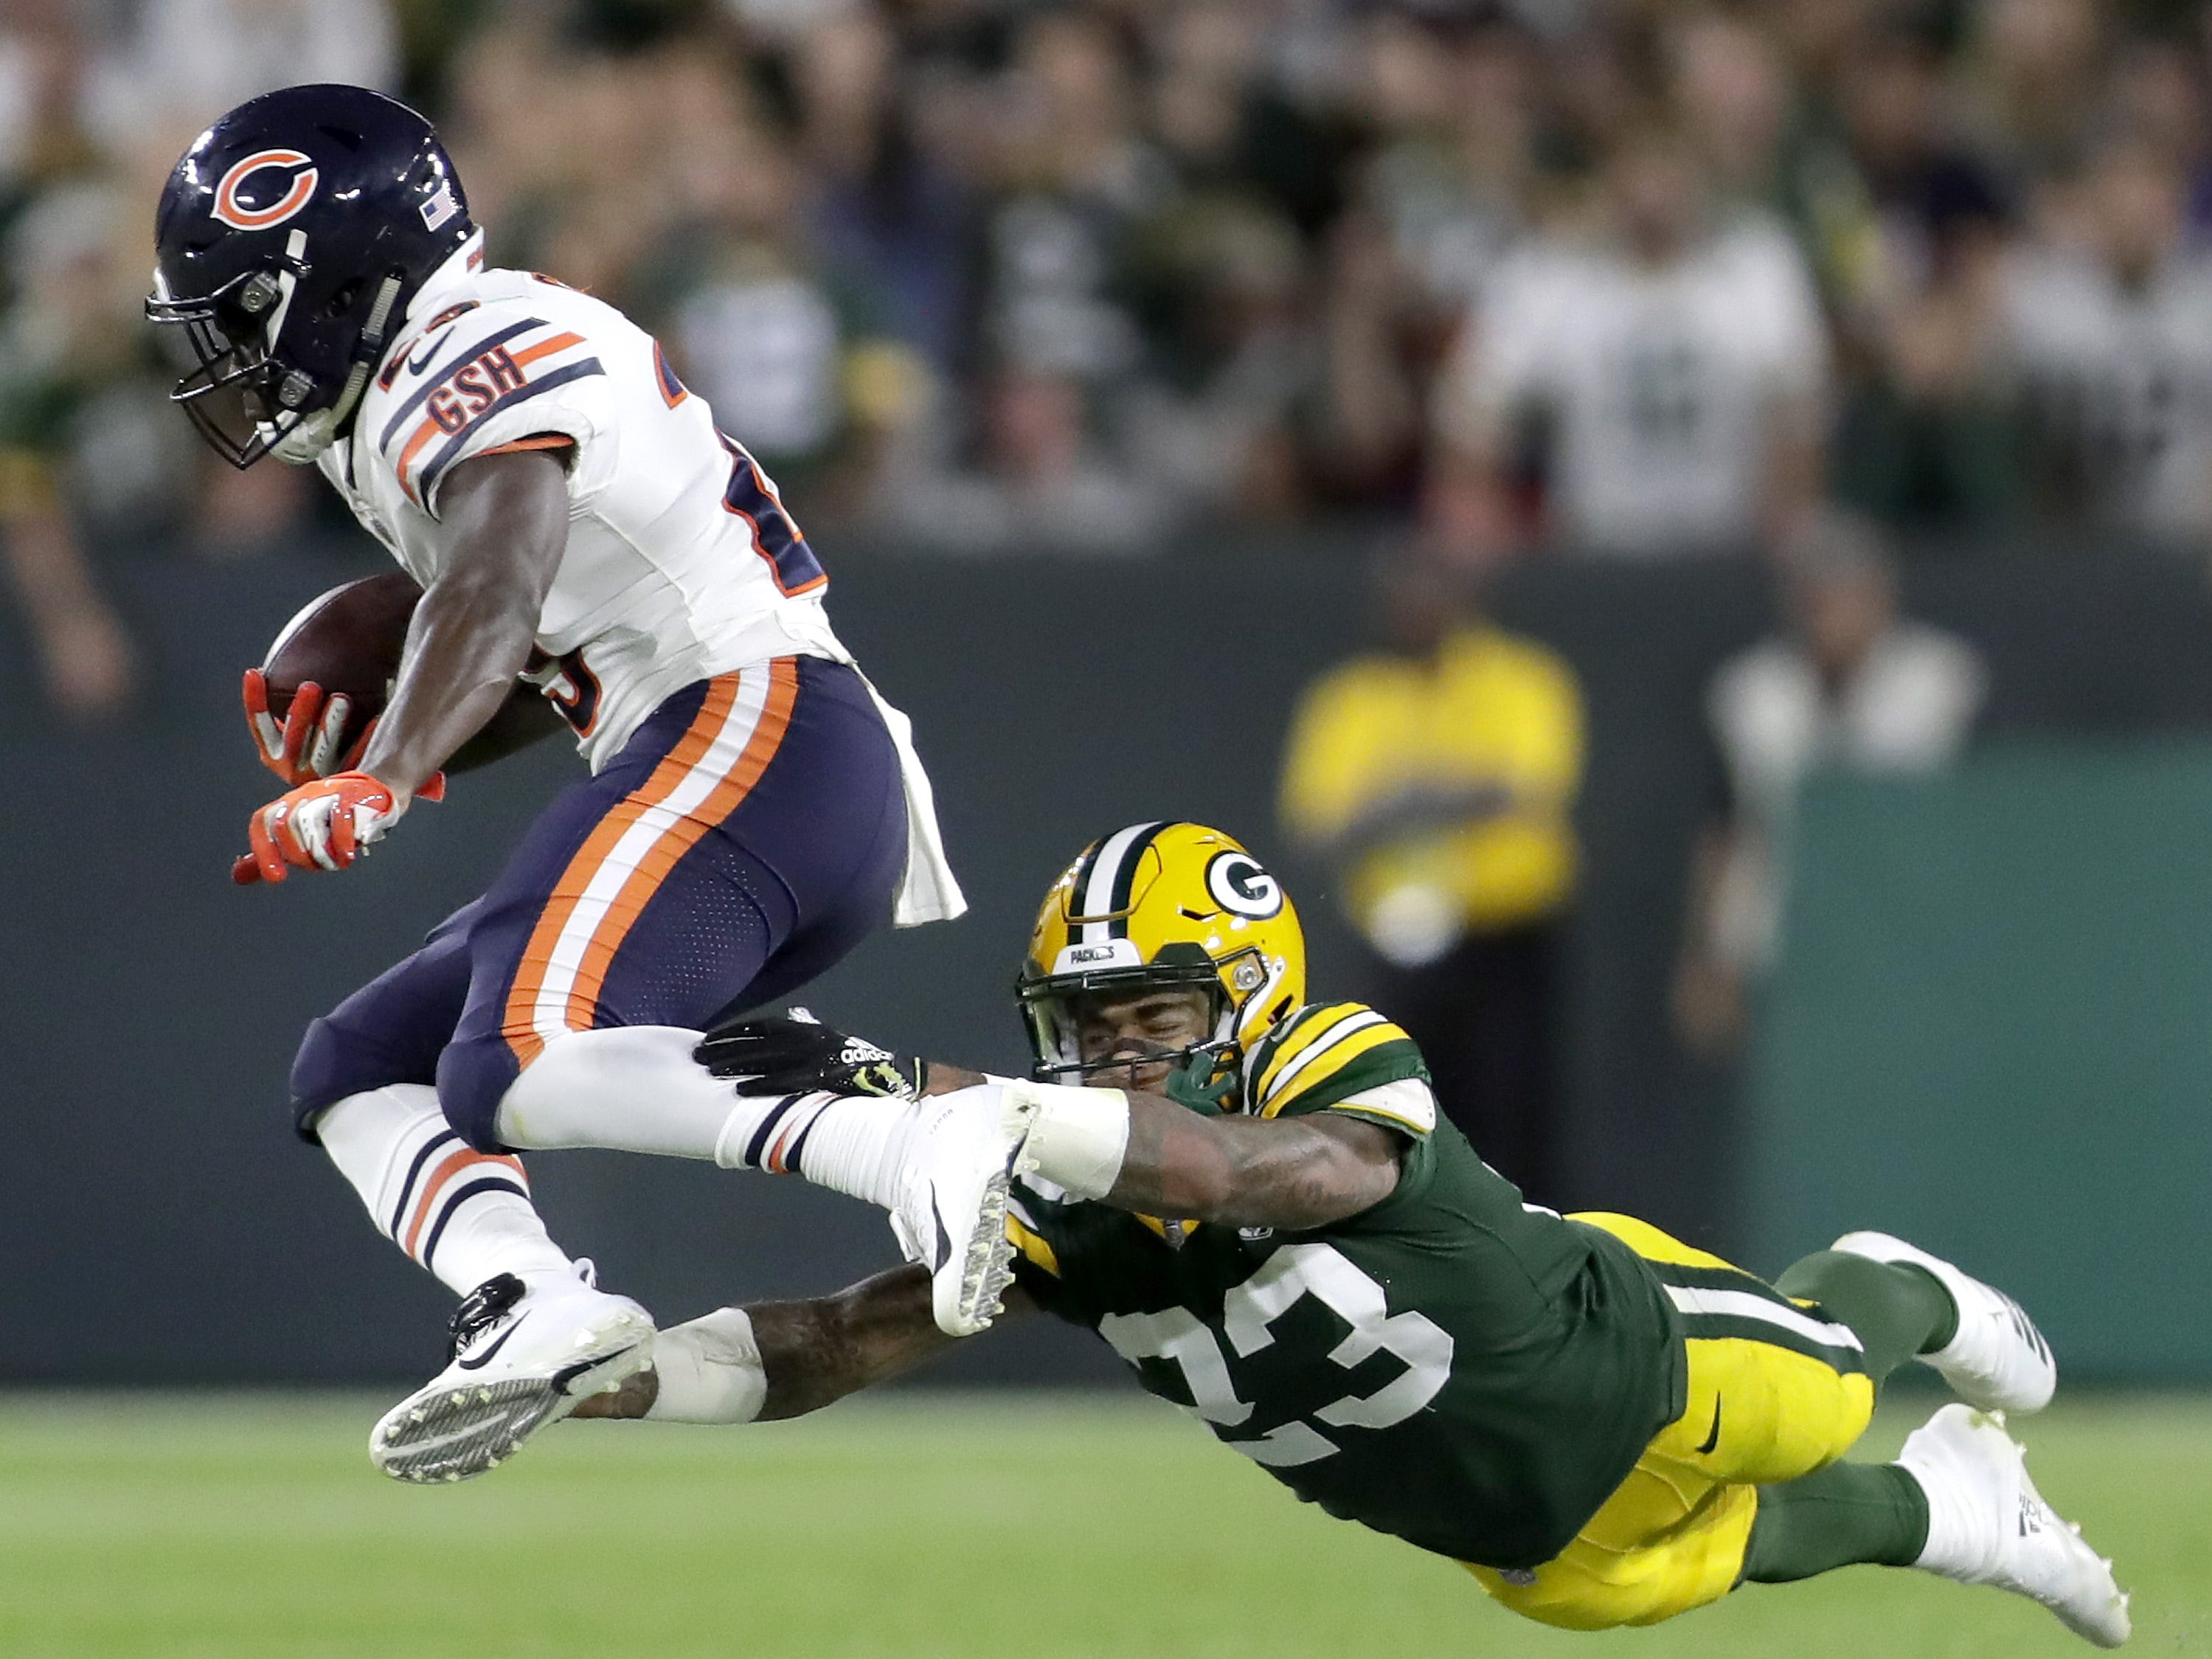 Green Bay Packers' Jaire Alexander against Chicago Bears' Tarik Cohen in the fourth quarter of the season opener on Sunday, September 9, 2018, at Lambeau Field in Green Bay, Wis. The Packers defeated the Bears 24 to 23.